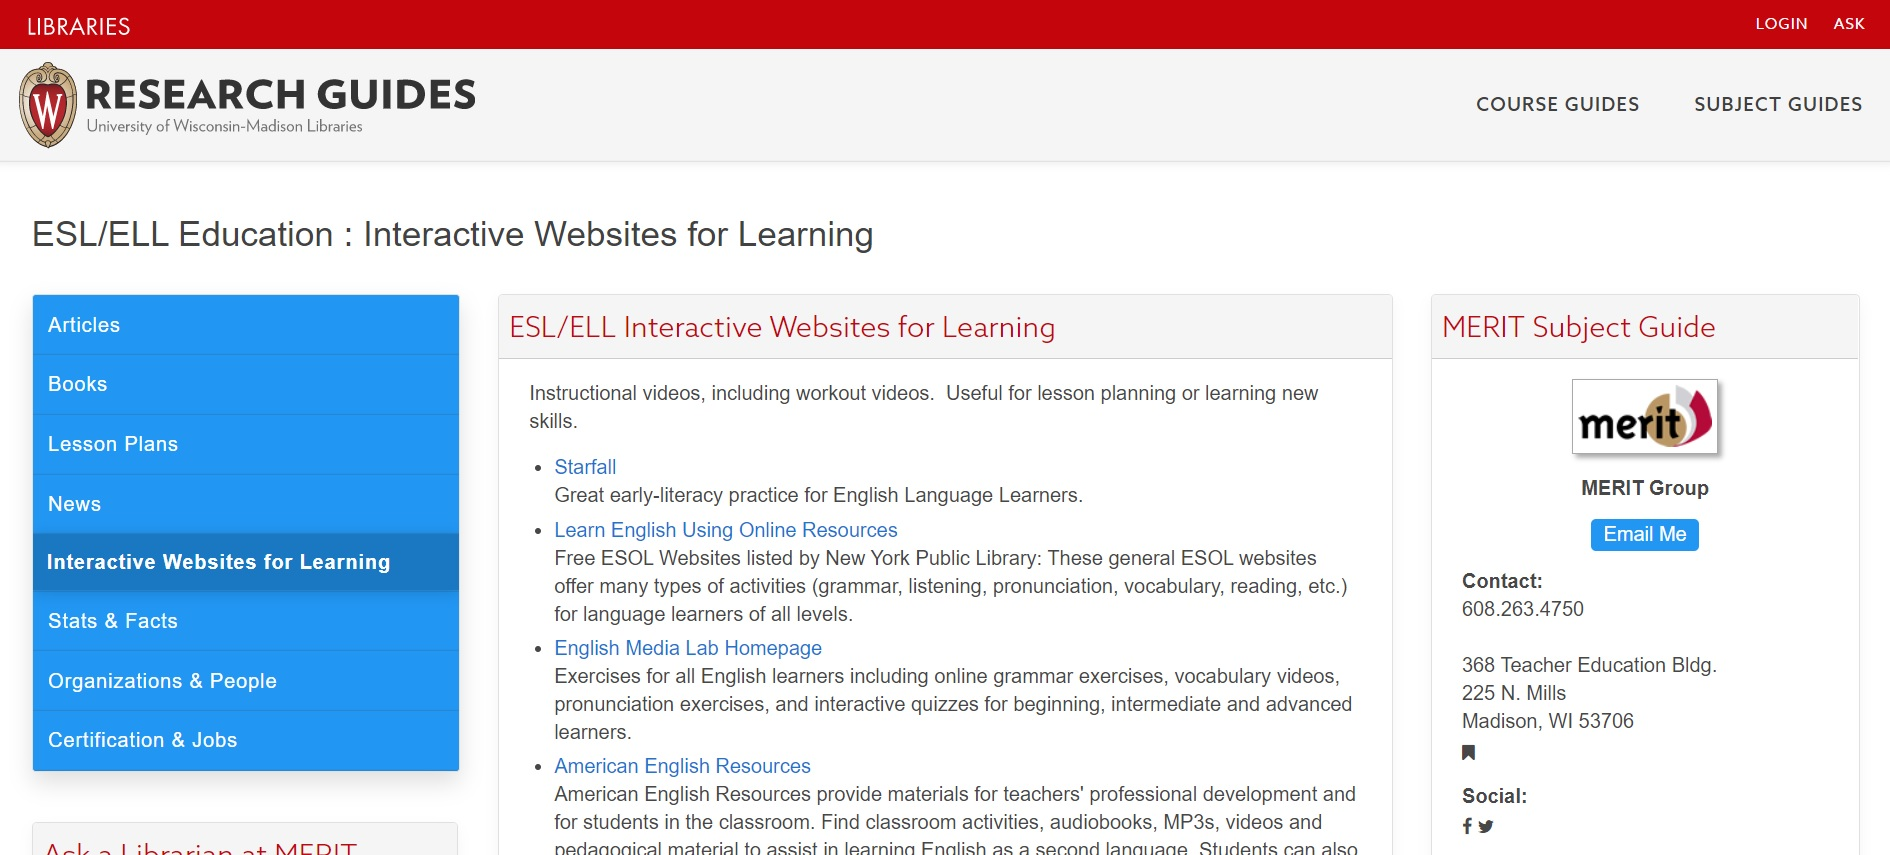 ESL/ELL Education : Interactive Websites for Learning